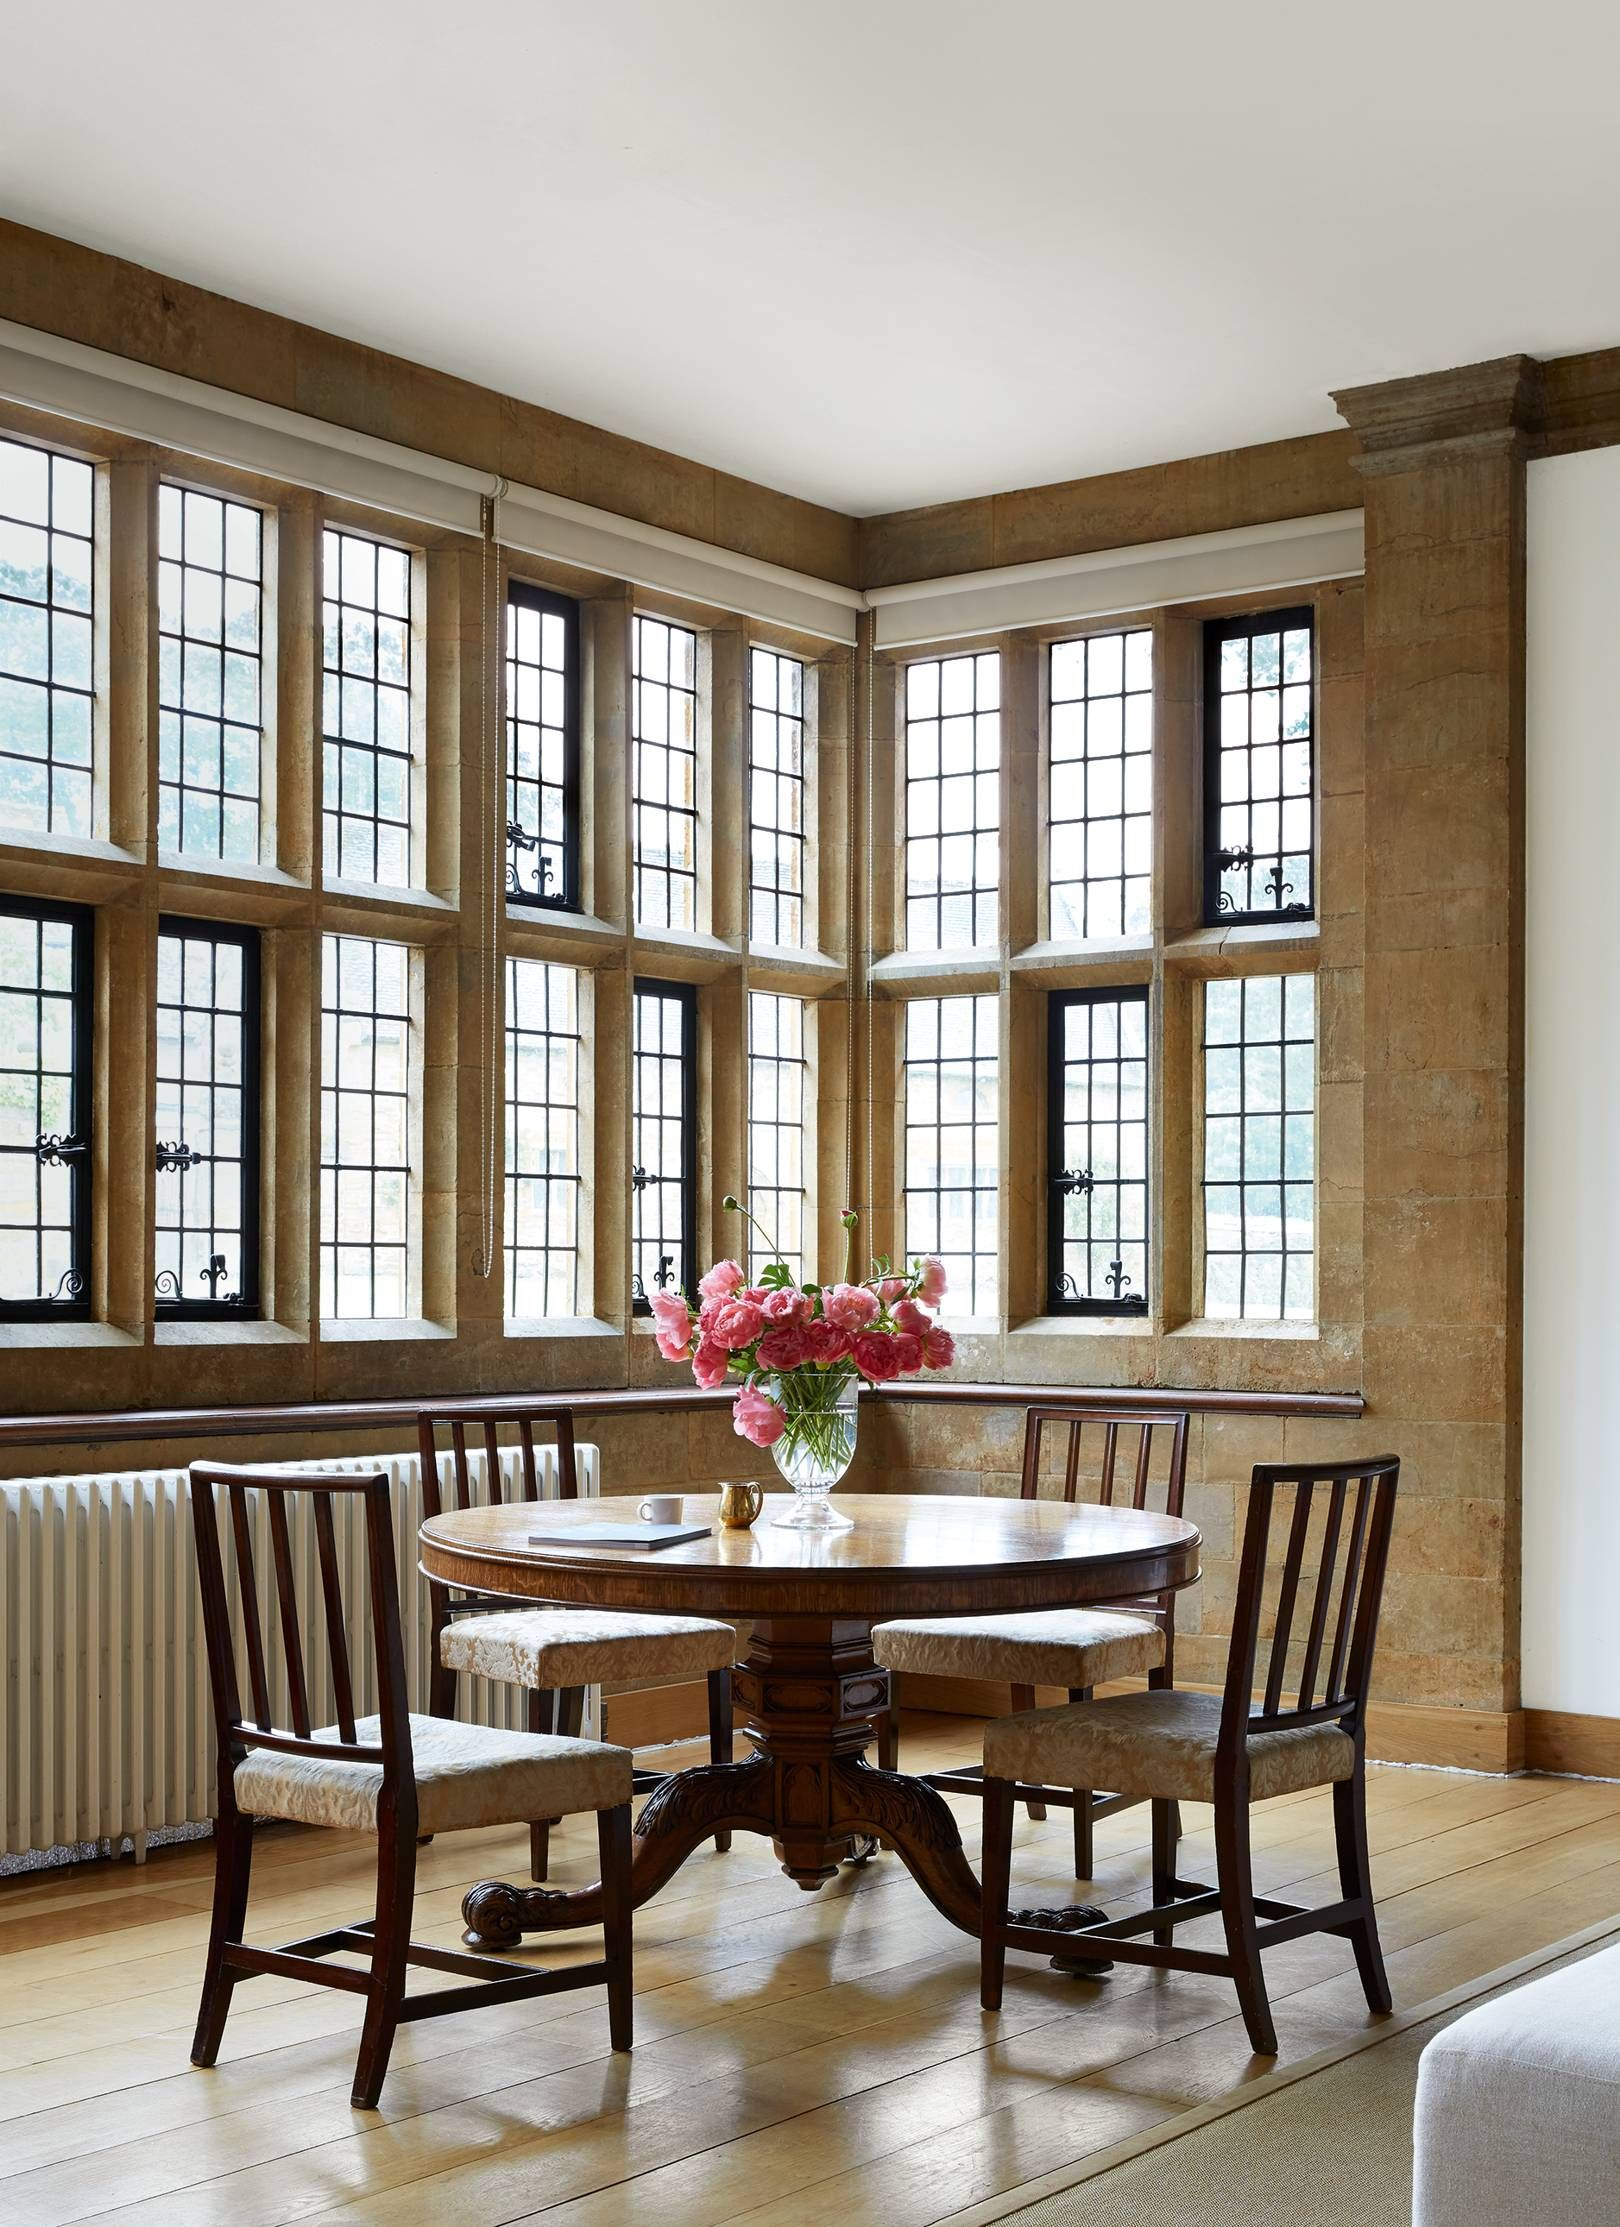 36+ Arts and crafts dining table uk info